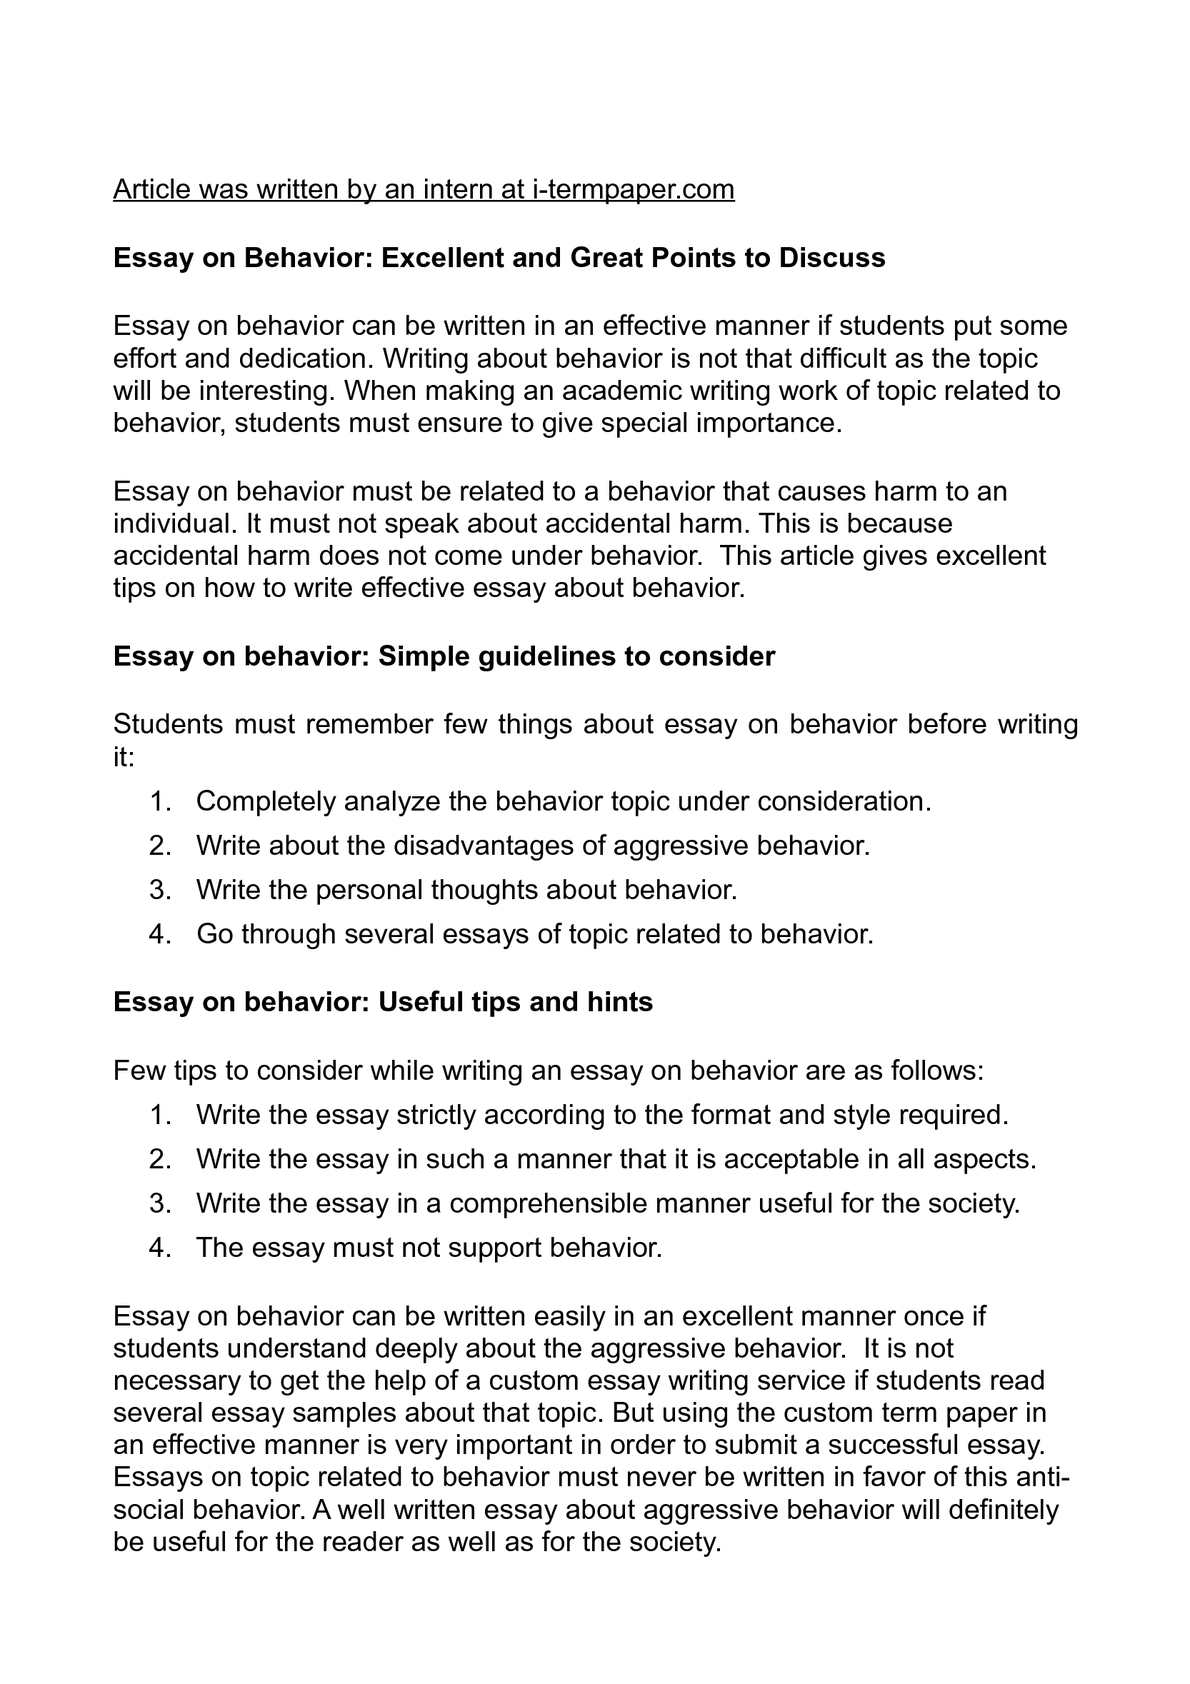 002 Behavior Essay Example Astounding Deviant Topics Pdf Essays For Elementary Students To Copy Full